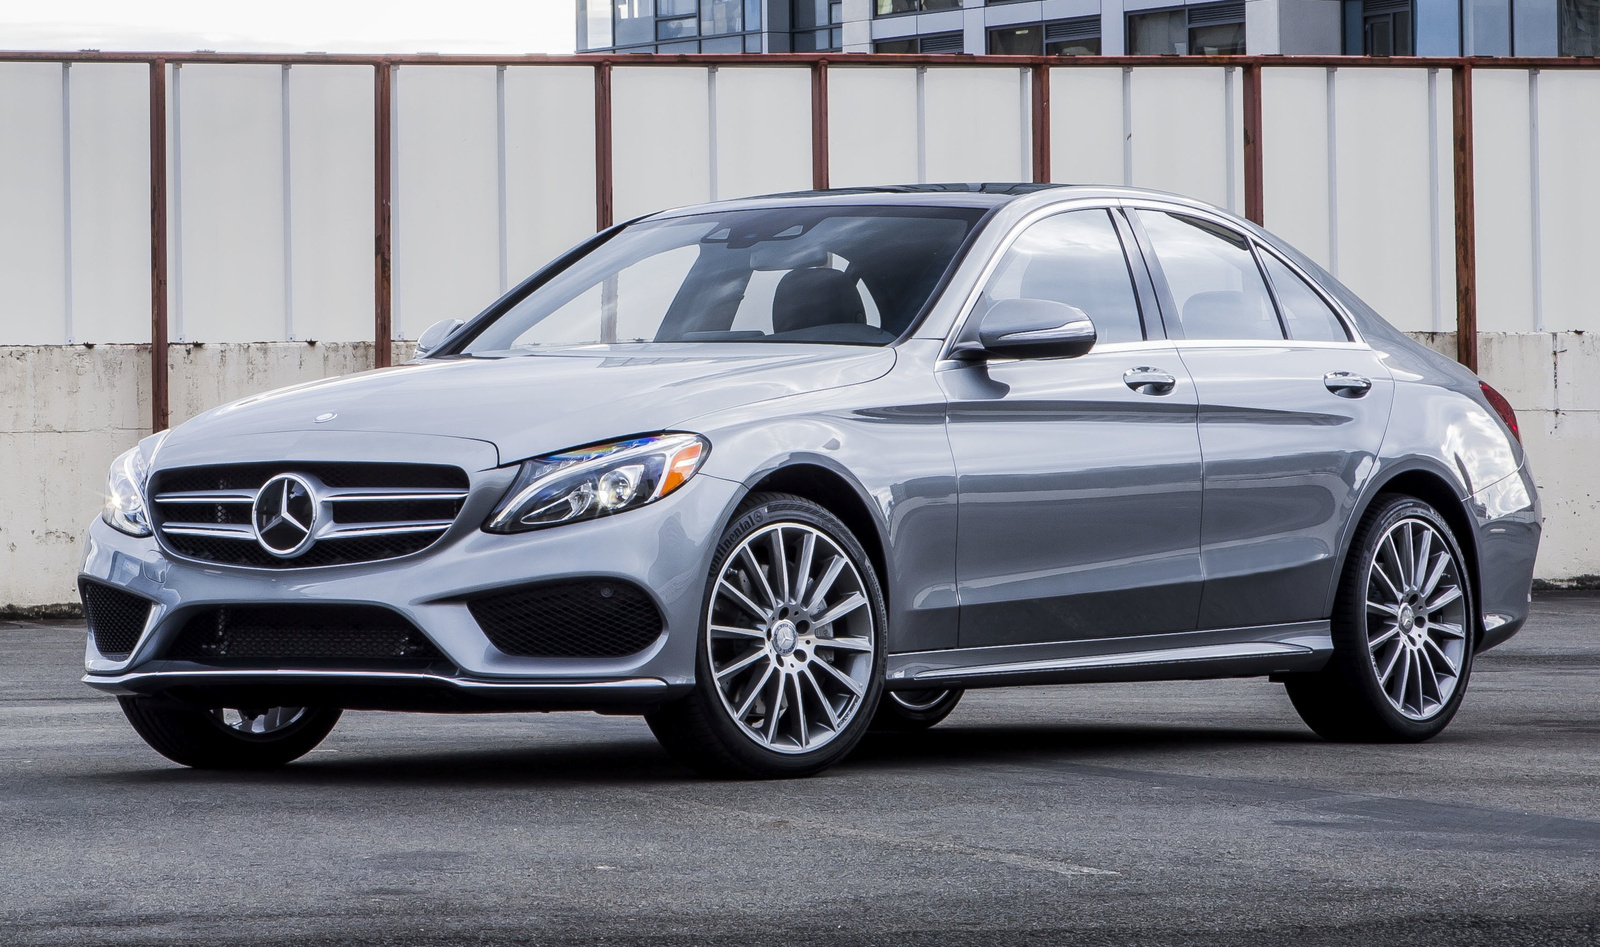 2015 mercedes benz c class overview cargurus for Mercedes benz new cars 2015